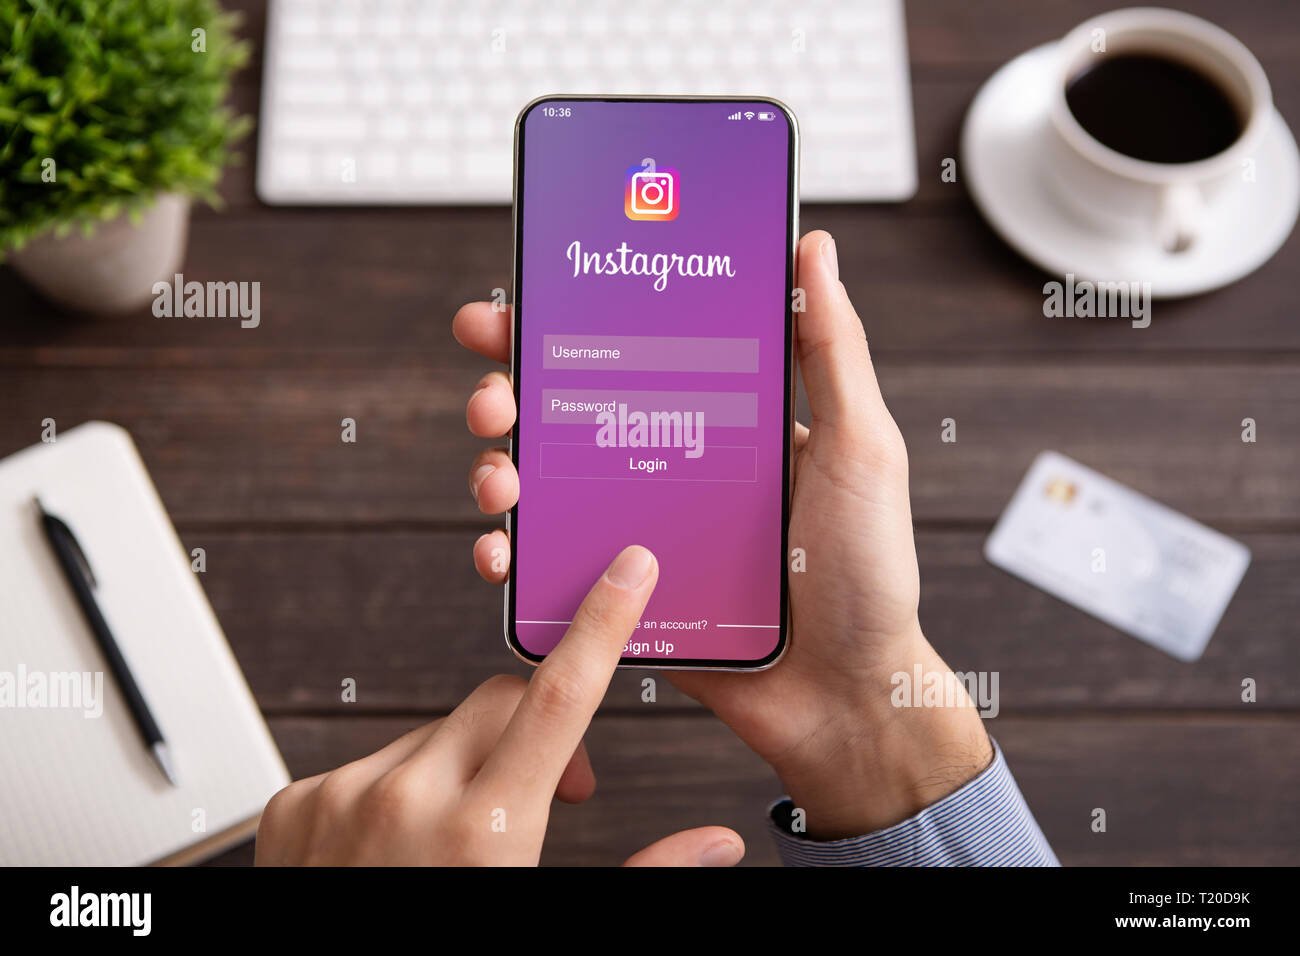 Man holding iPhone ack with Instagram application on screen. - Stock Image